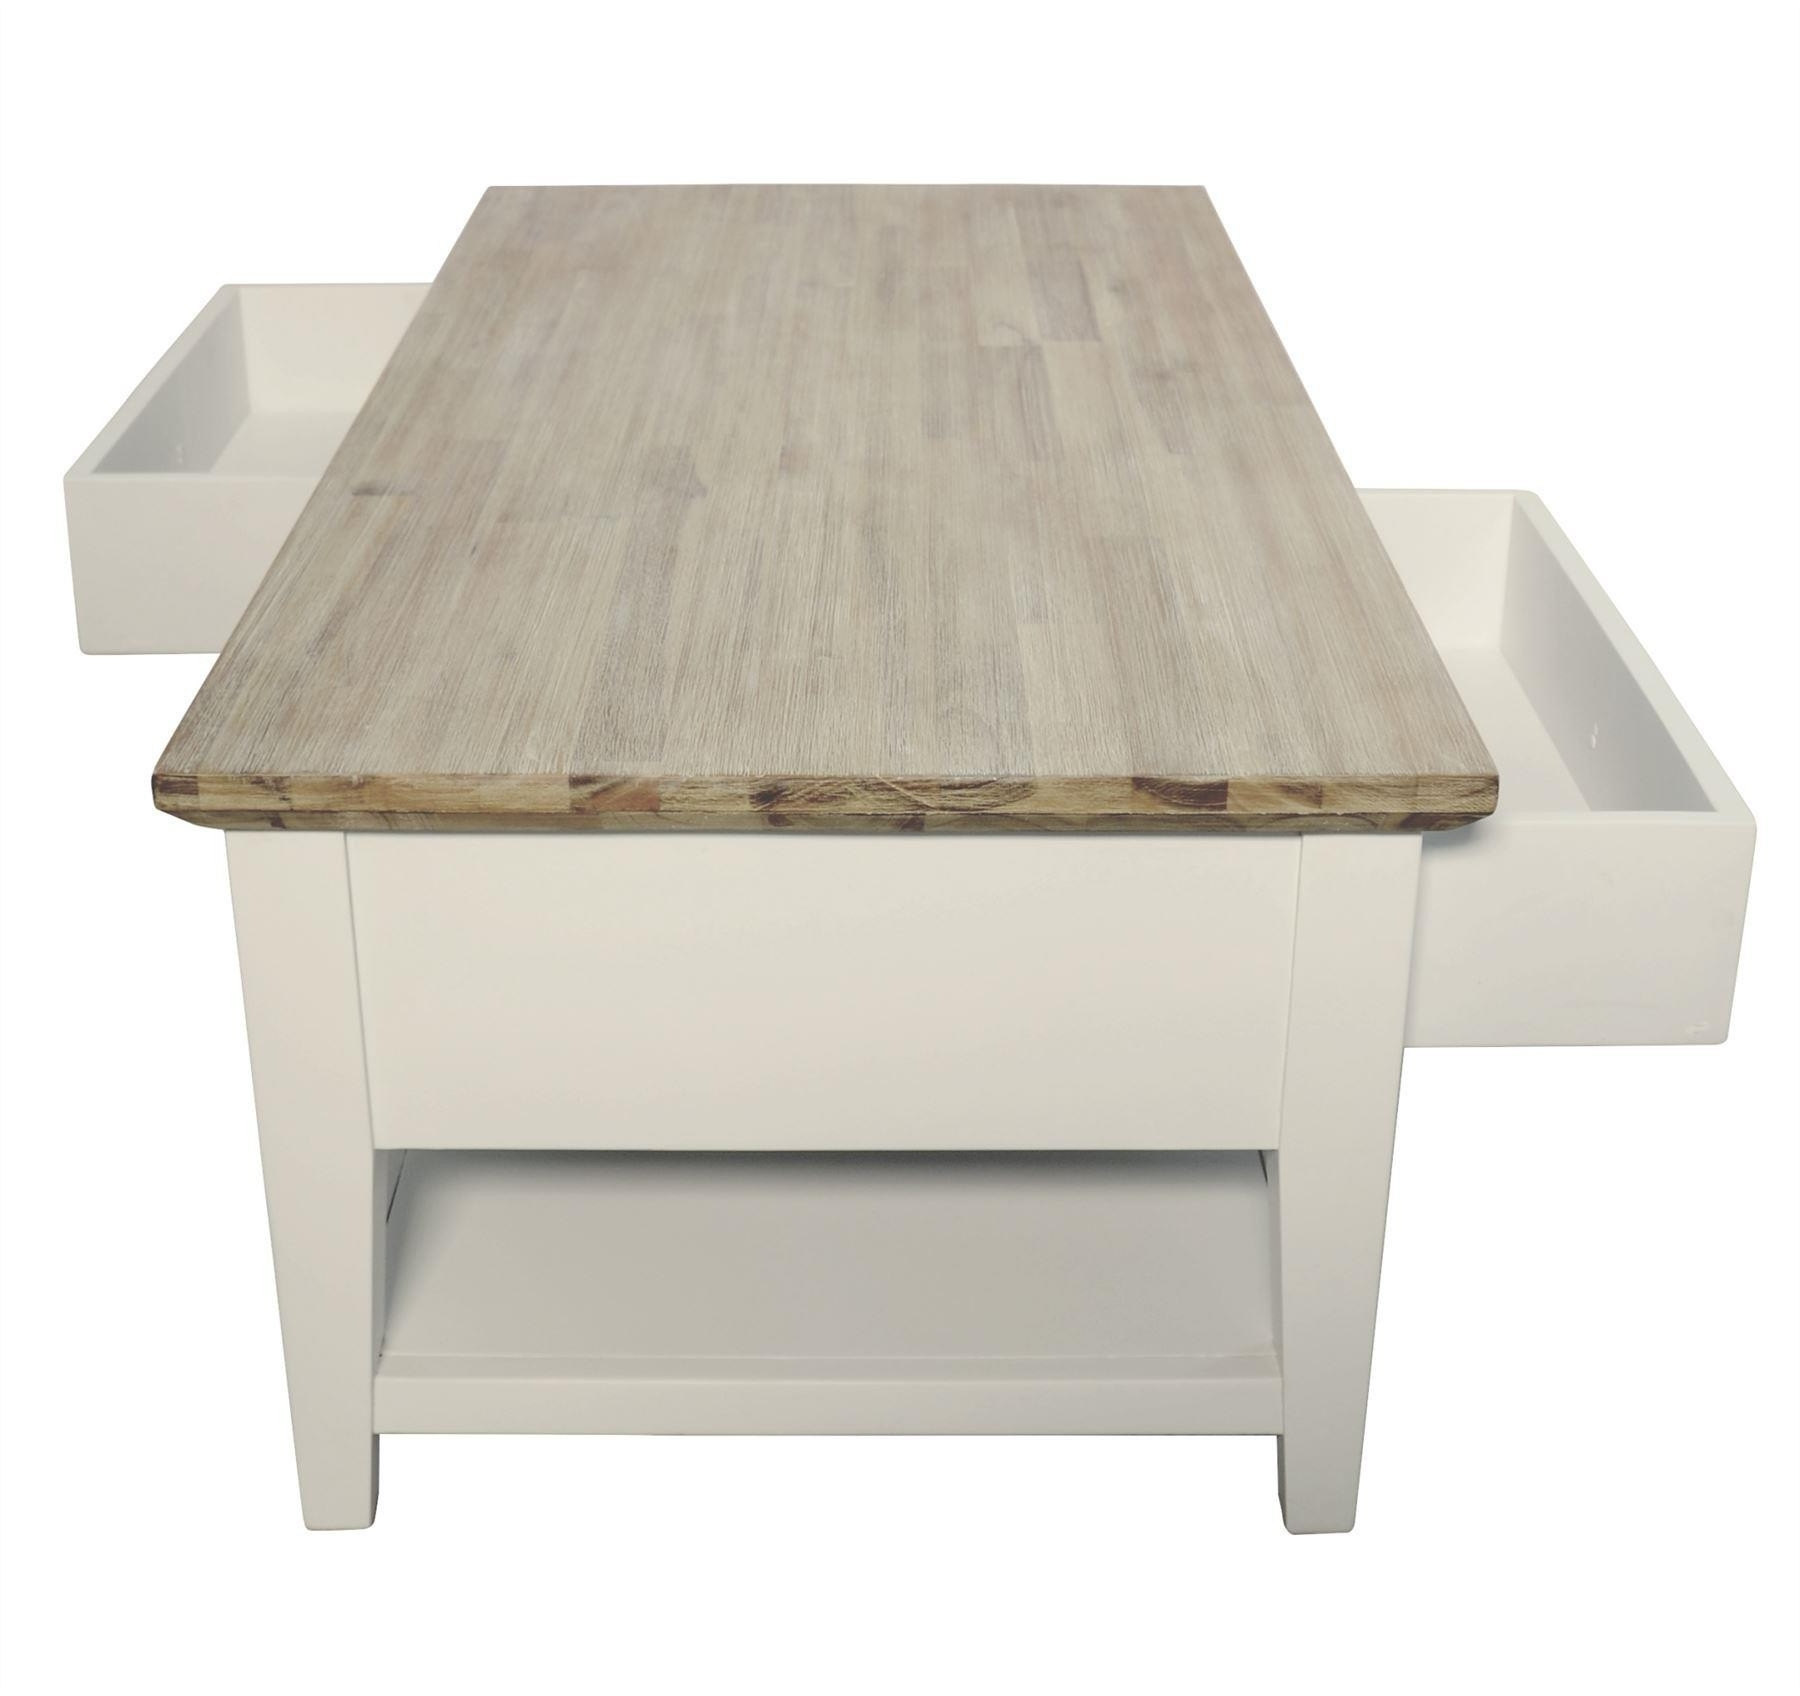 Most Popular Limewash Coffee Tables Throughout Lime Wash Coffee Table Unique Florence Coffee Table White – Coffee Table (View 13 of 20)